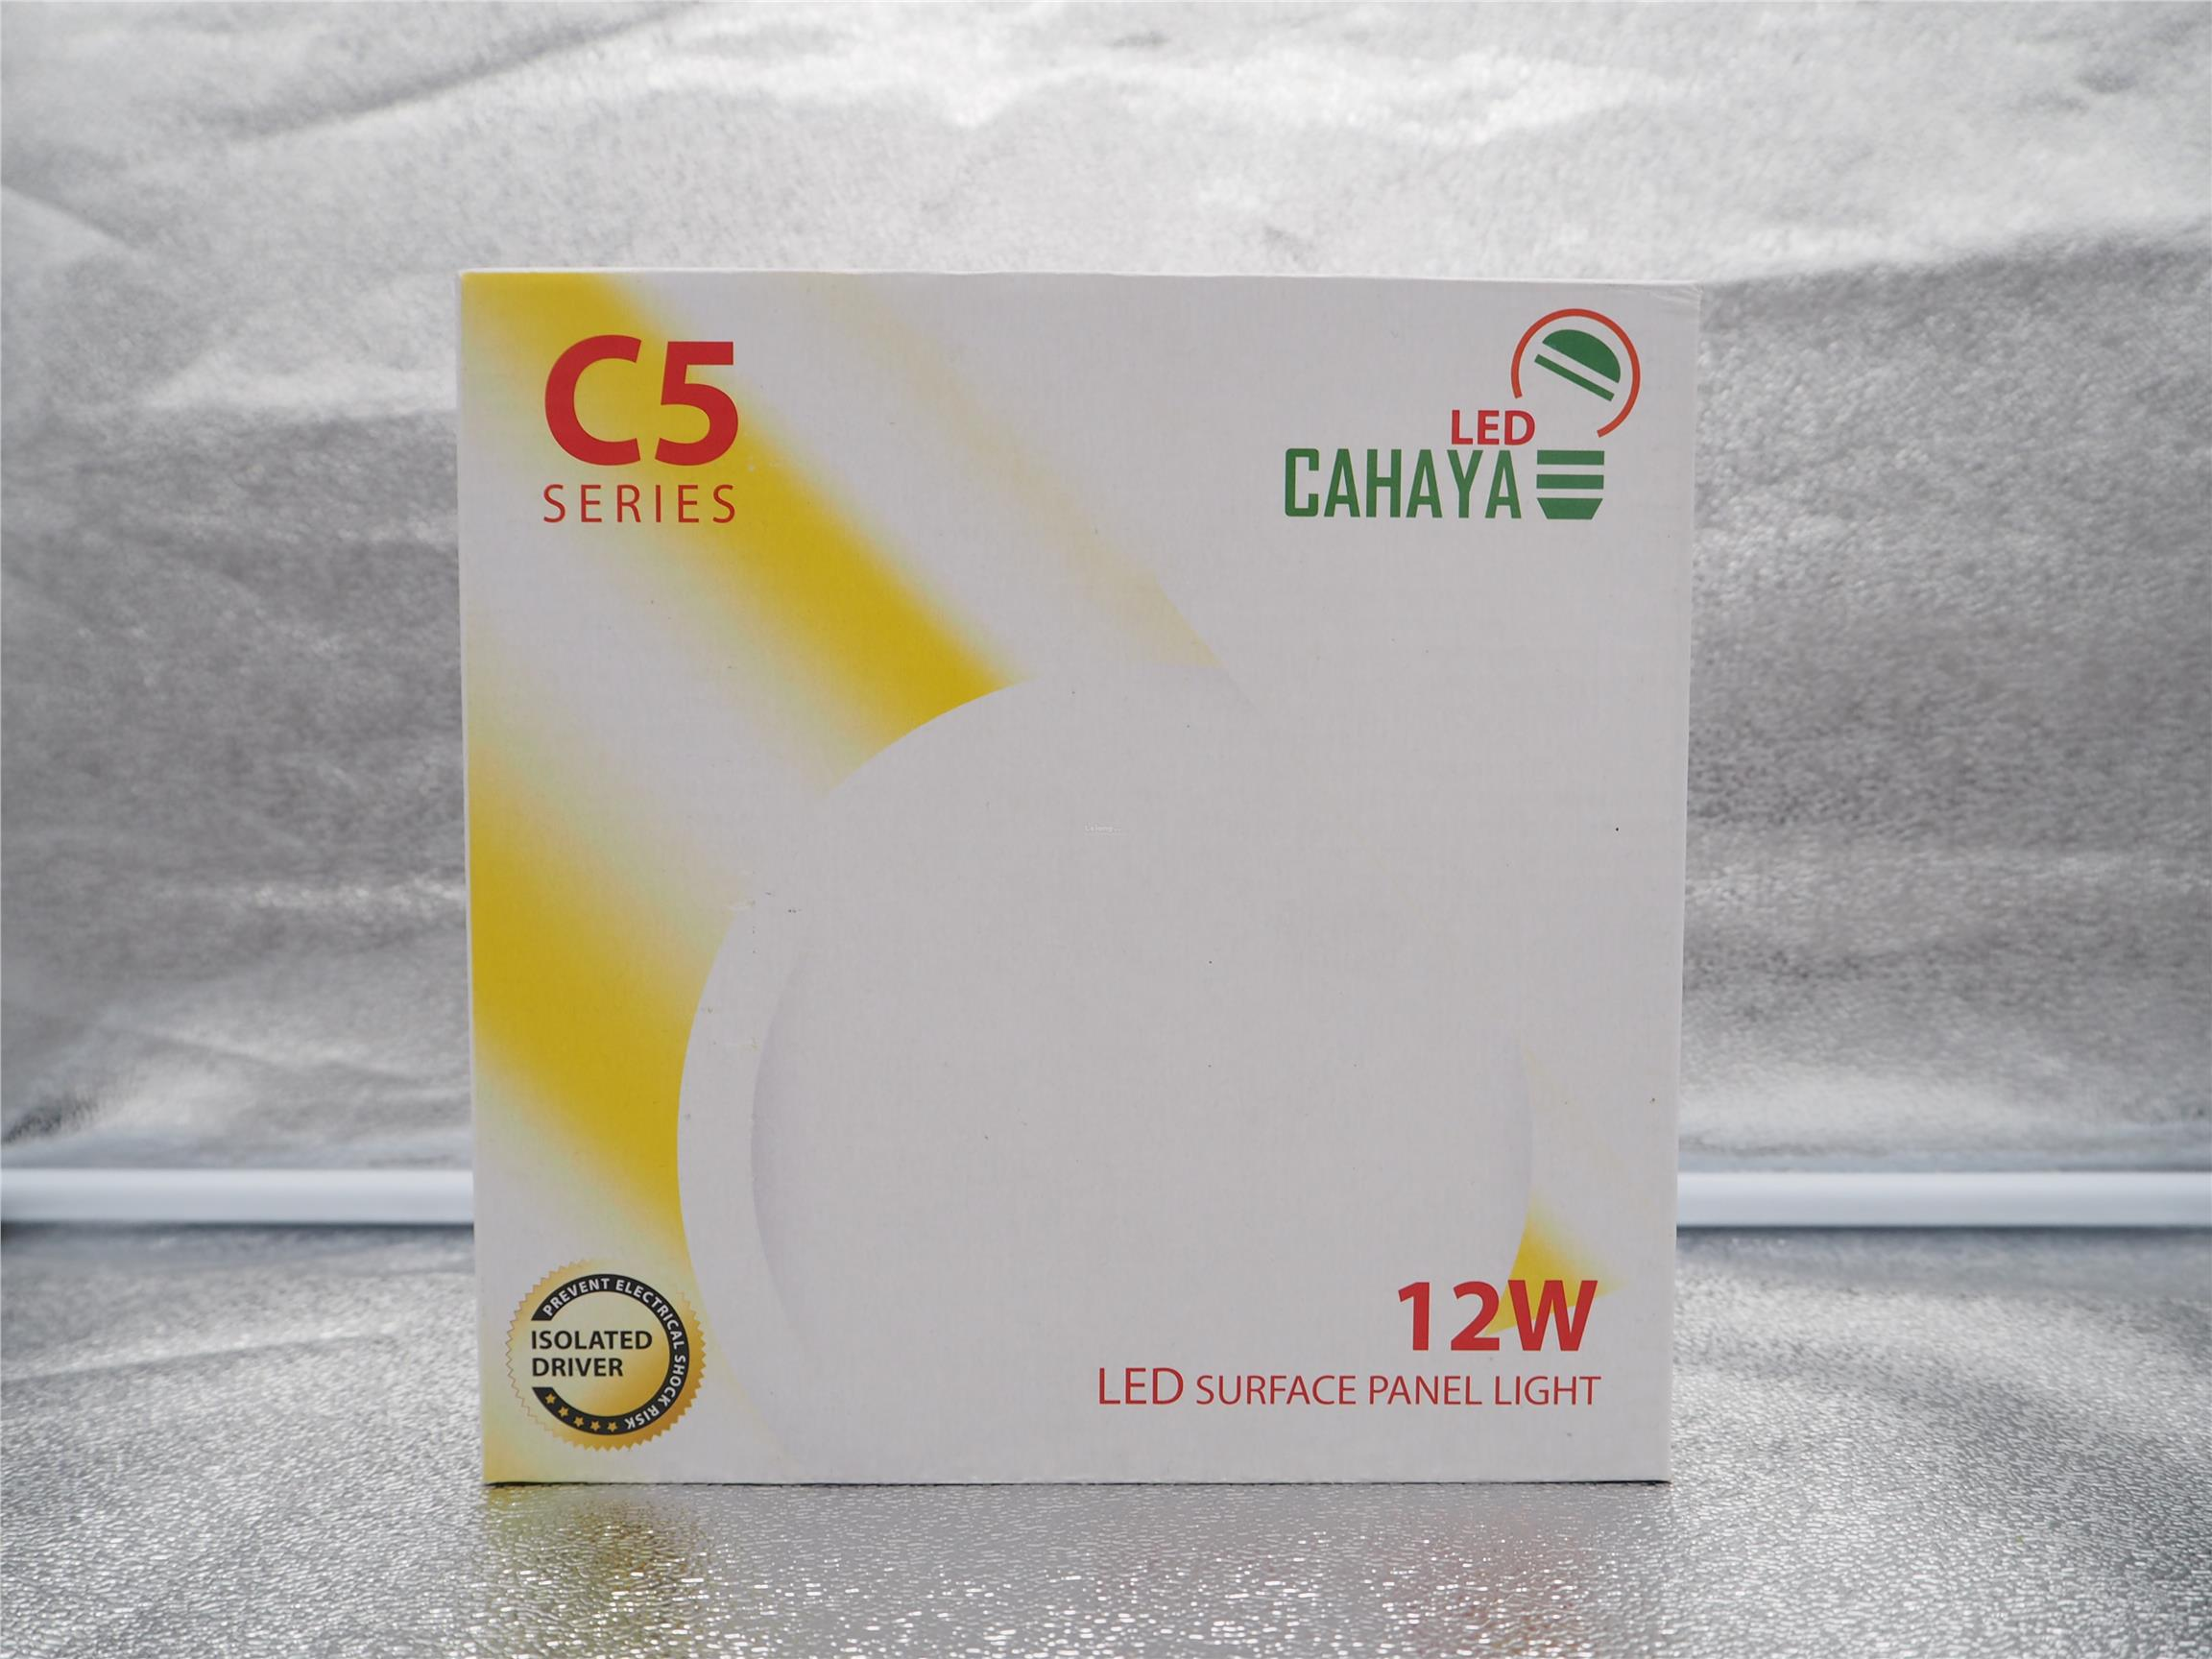 LED CAHAYA 12W LED SURFACE PANEL LIGHT